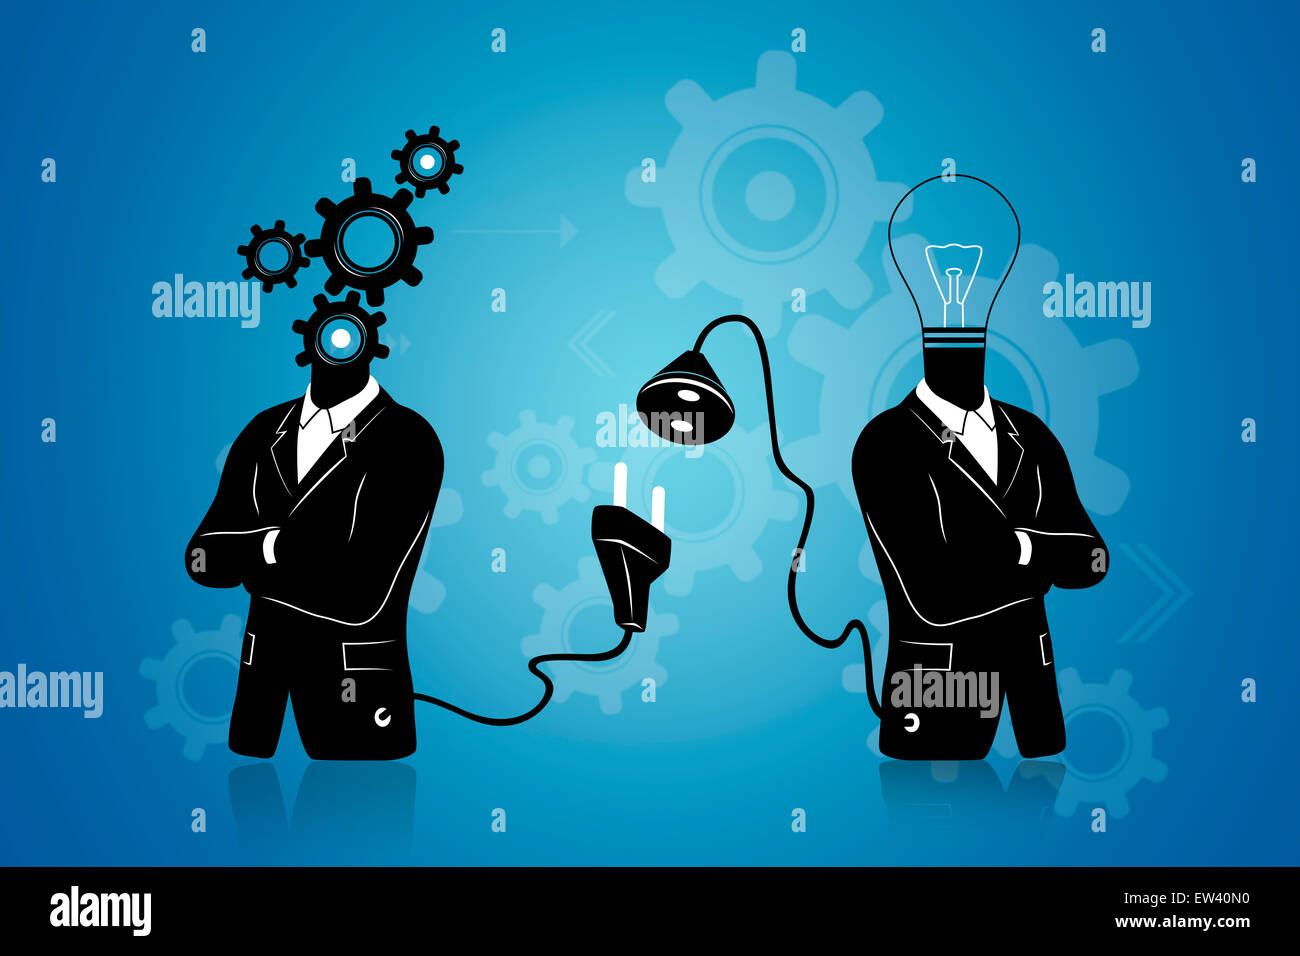 Concept of searching for / connecting to Idea. Businessman with gears connecting to businessman with light bulb. Stock Photo